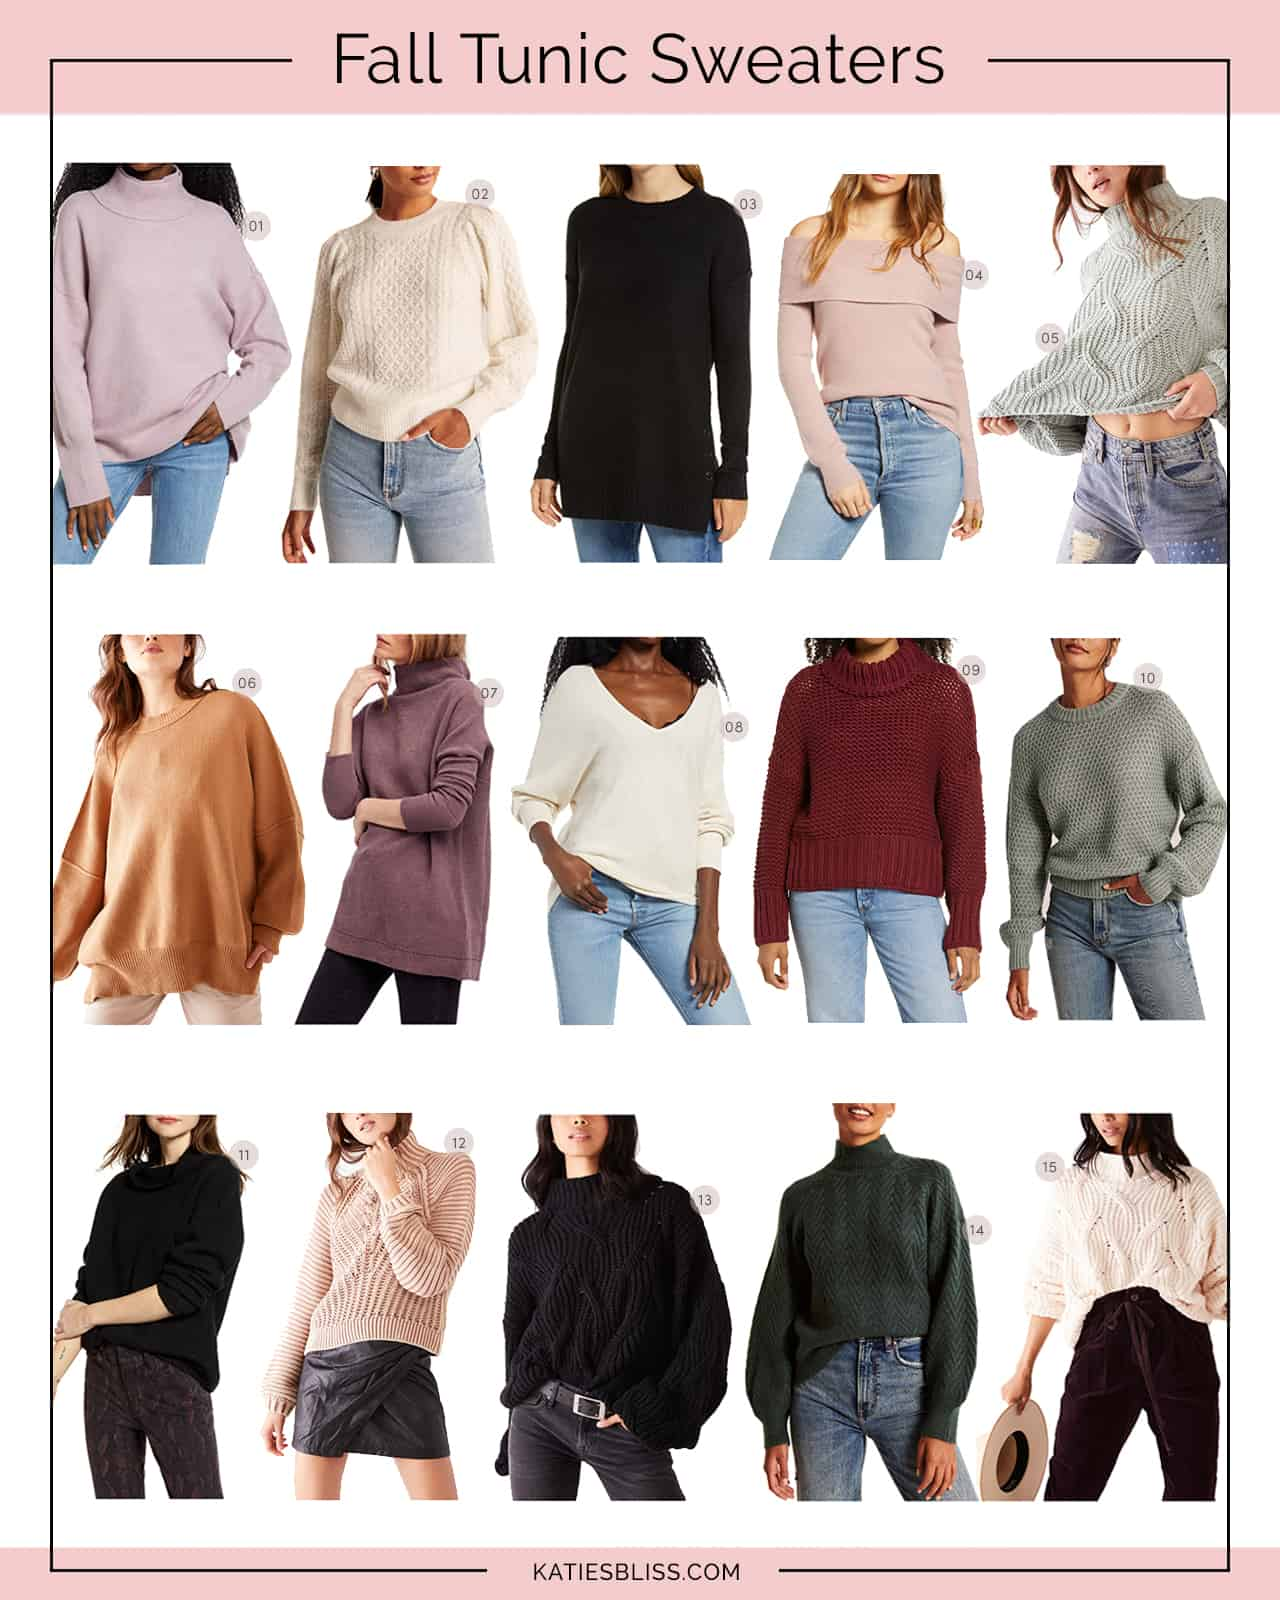 Katies Bliss Fall Tunic Sweaters